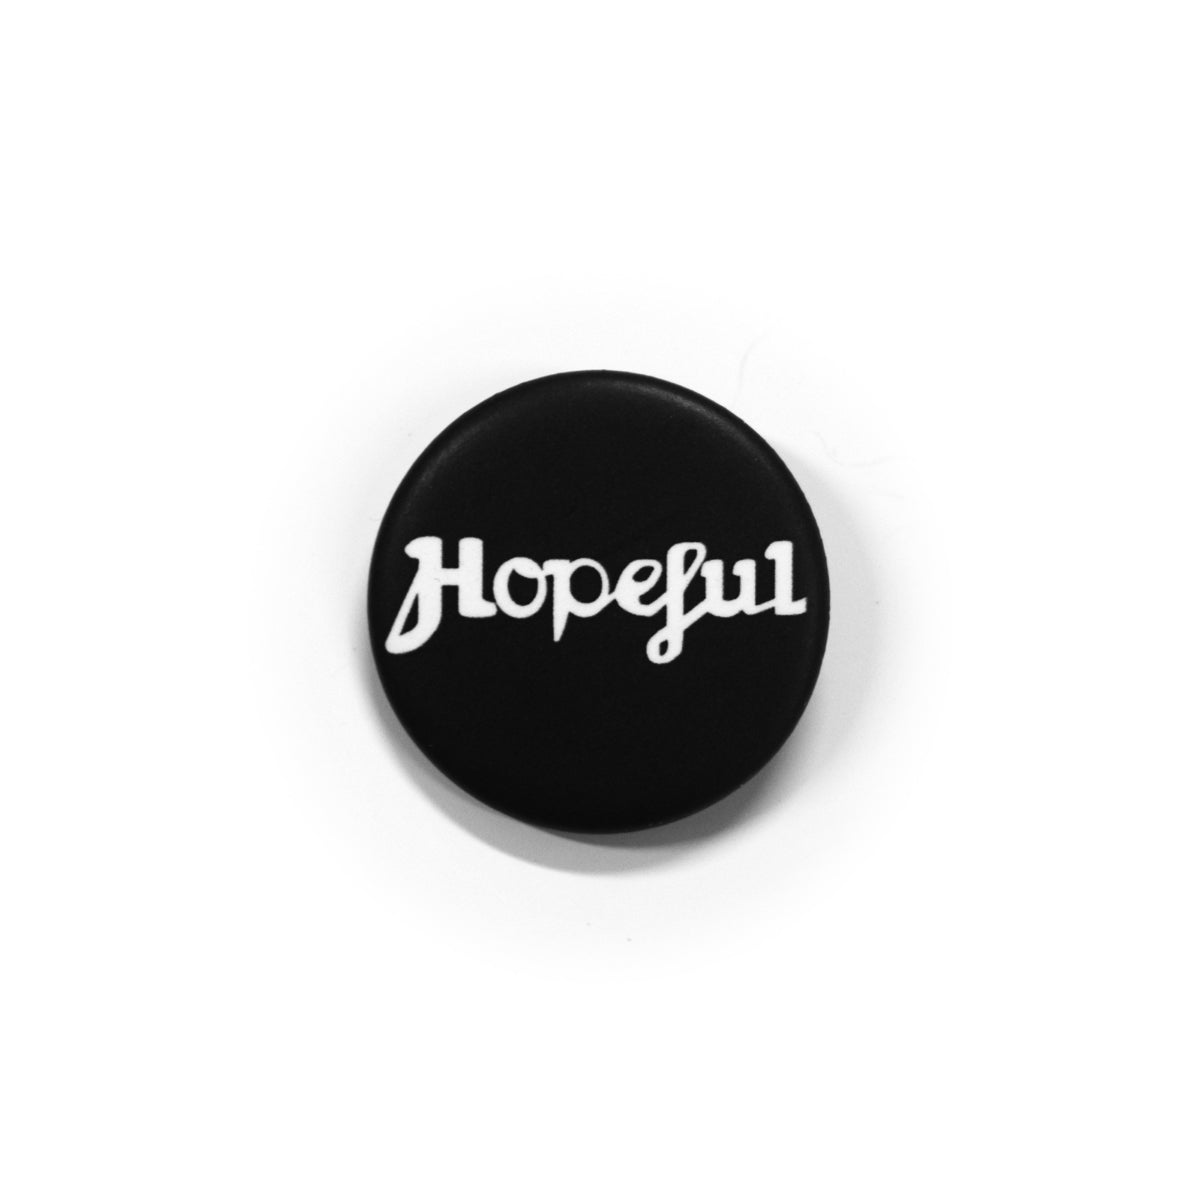 Hopeful Supporter's Pin Badge